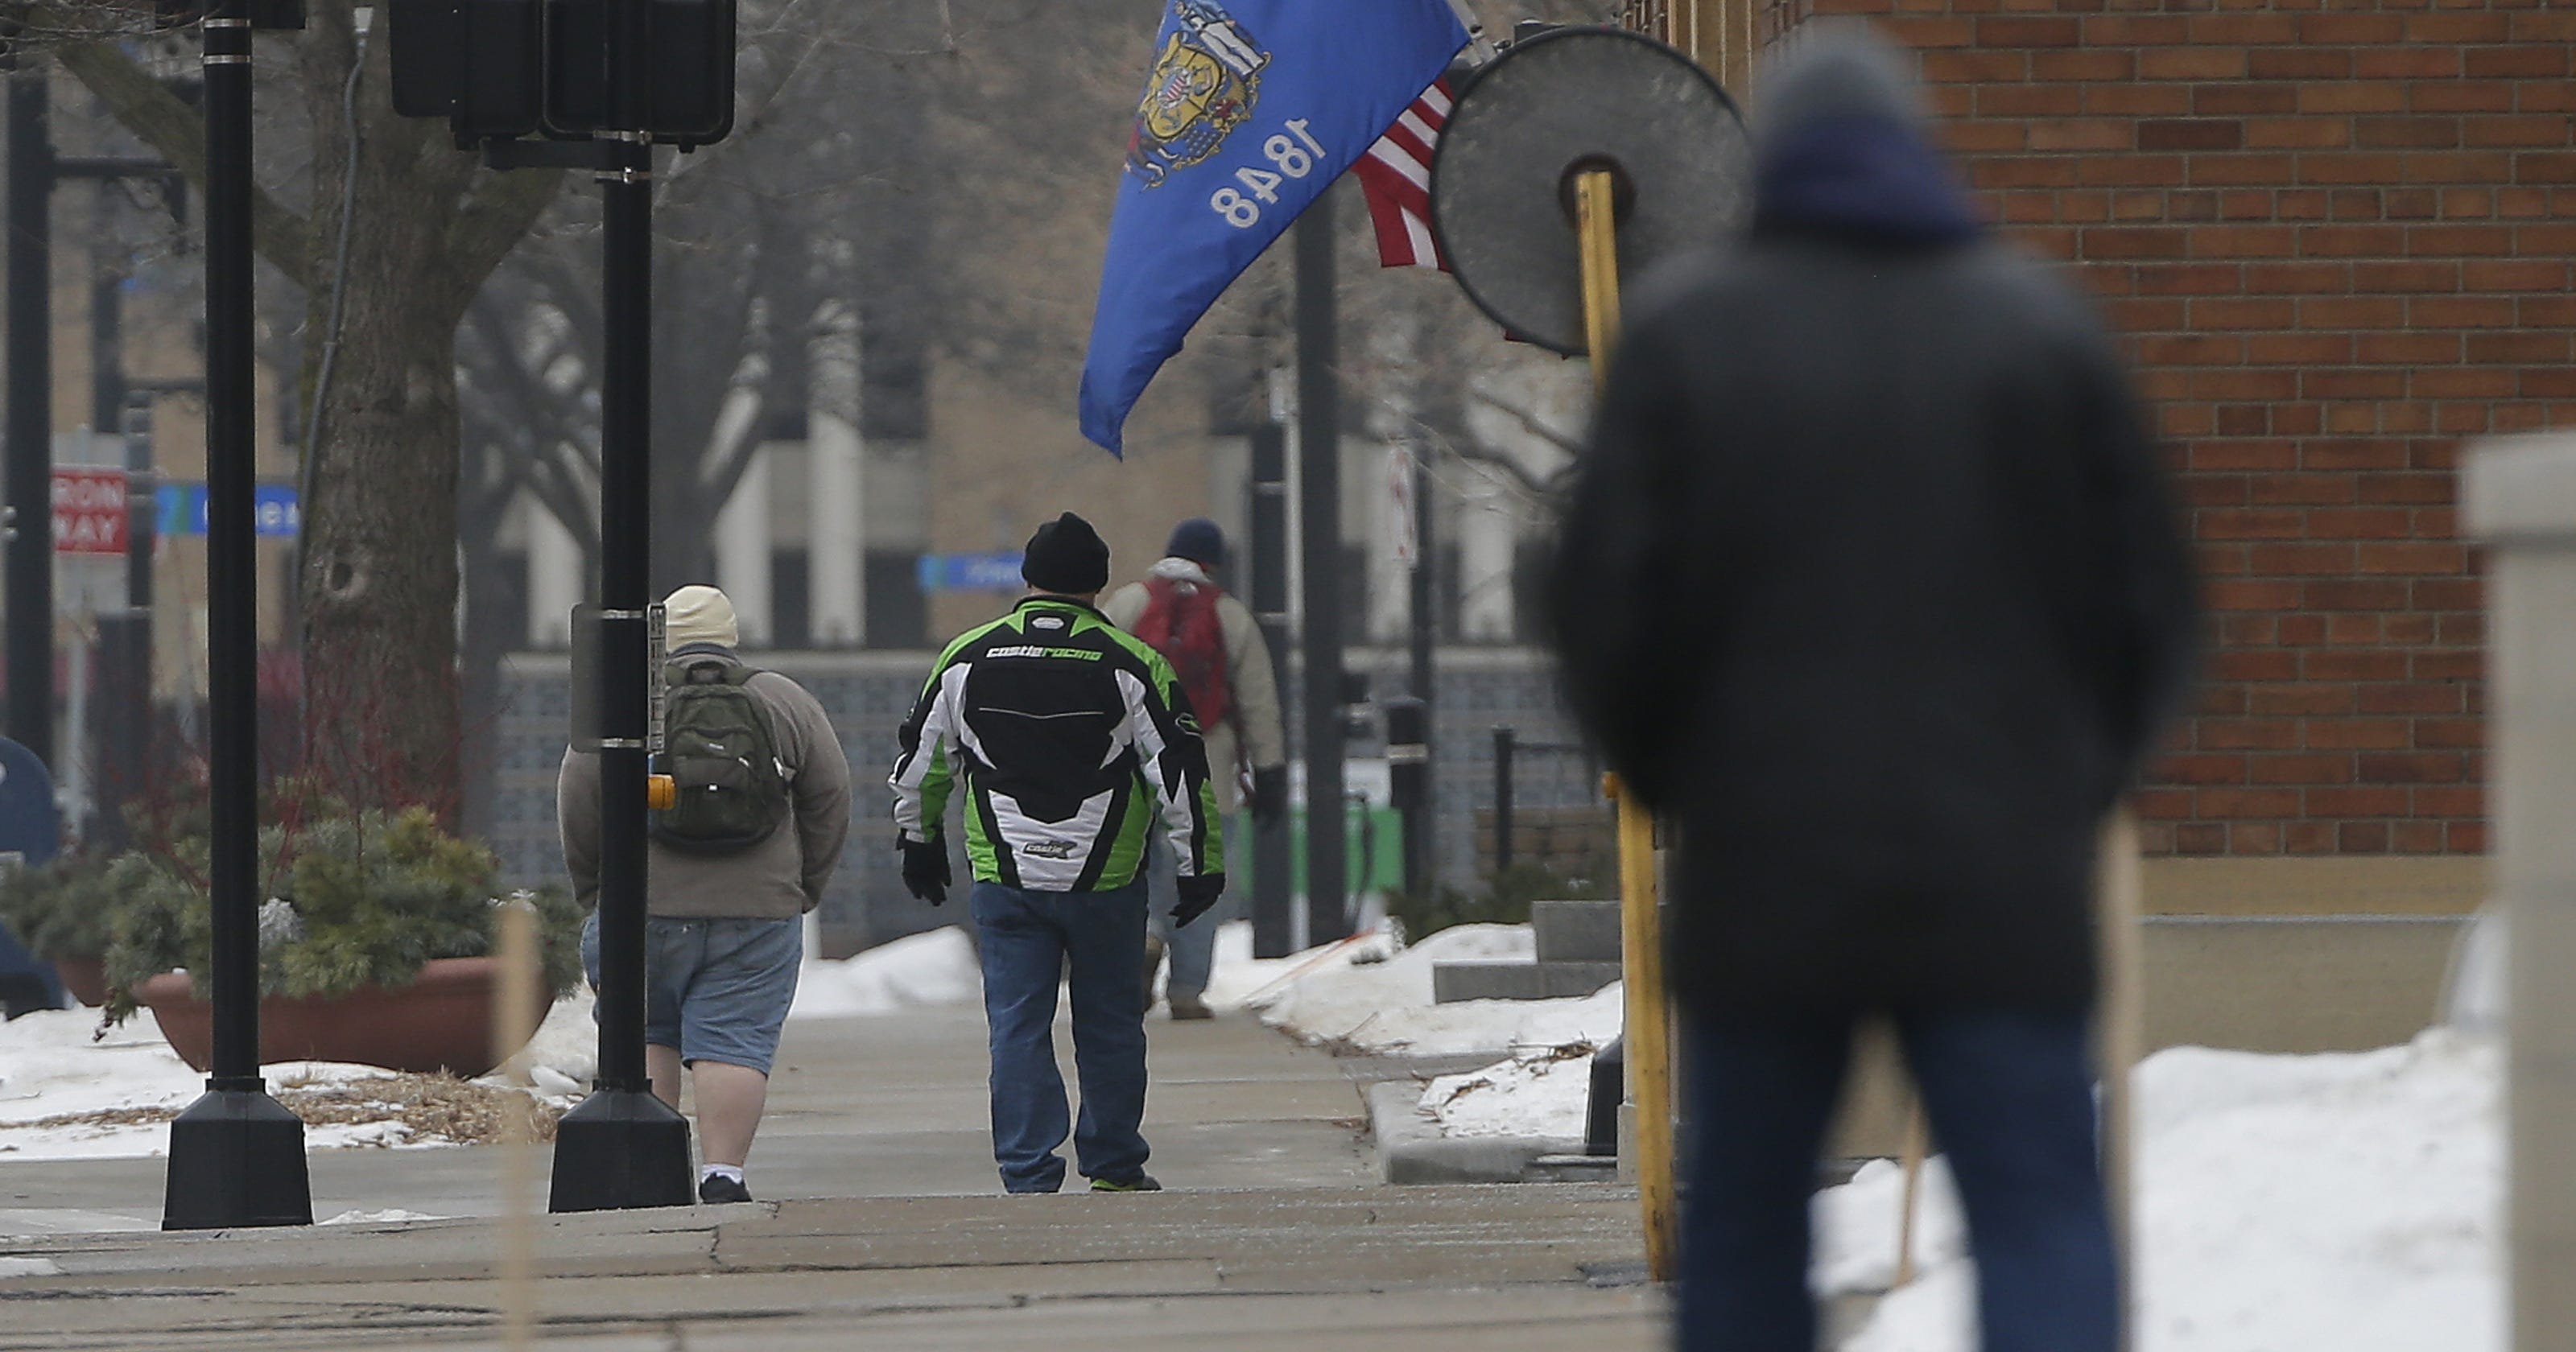 A quest to end homelessness in Brown County